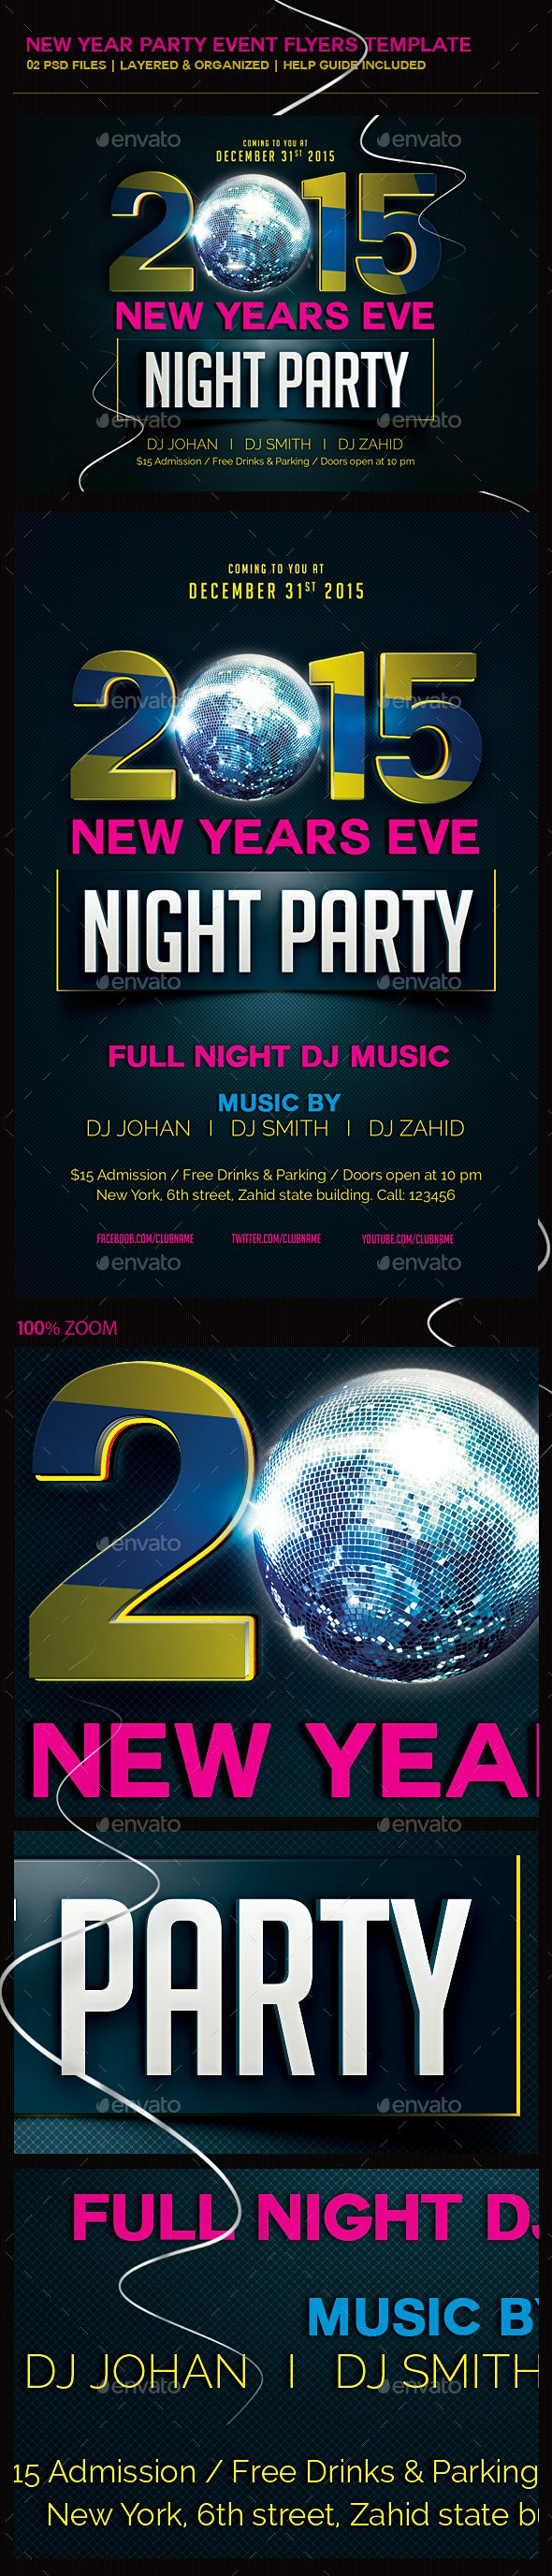 New Year Party Event Flyer - Clubs & Parties Events